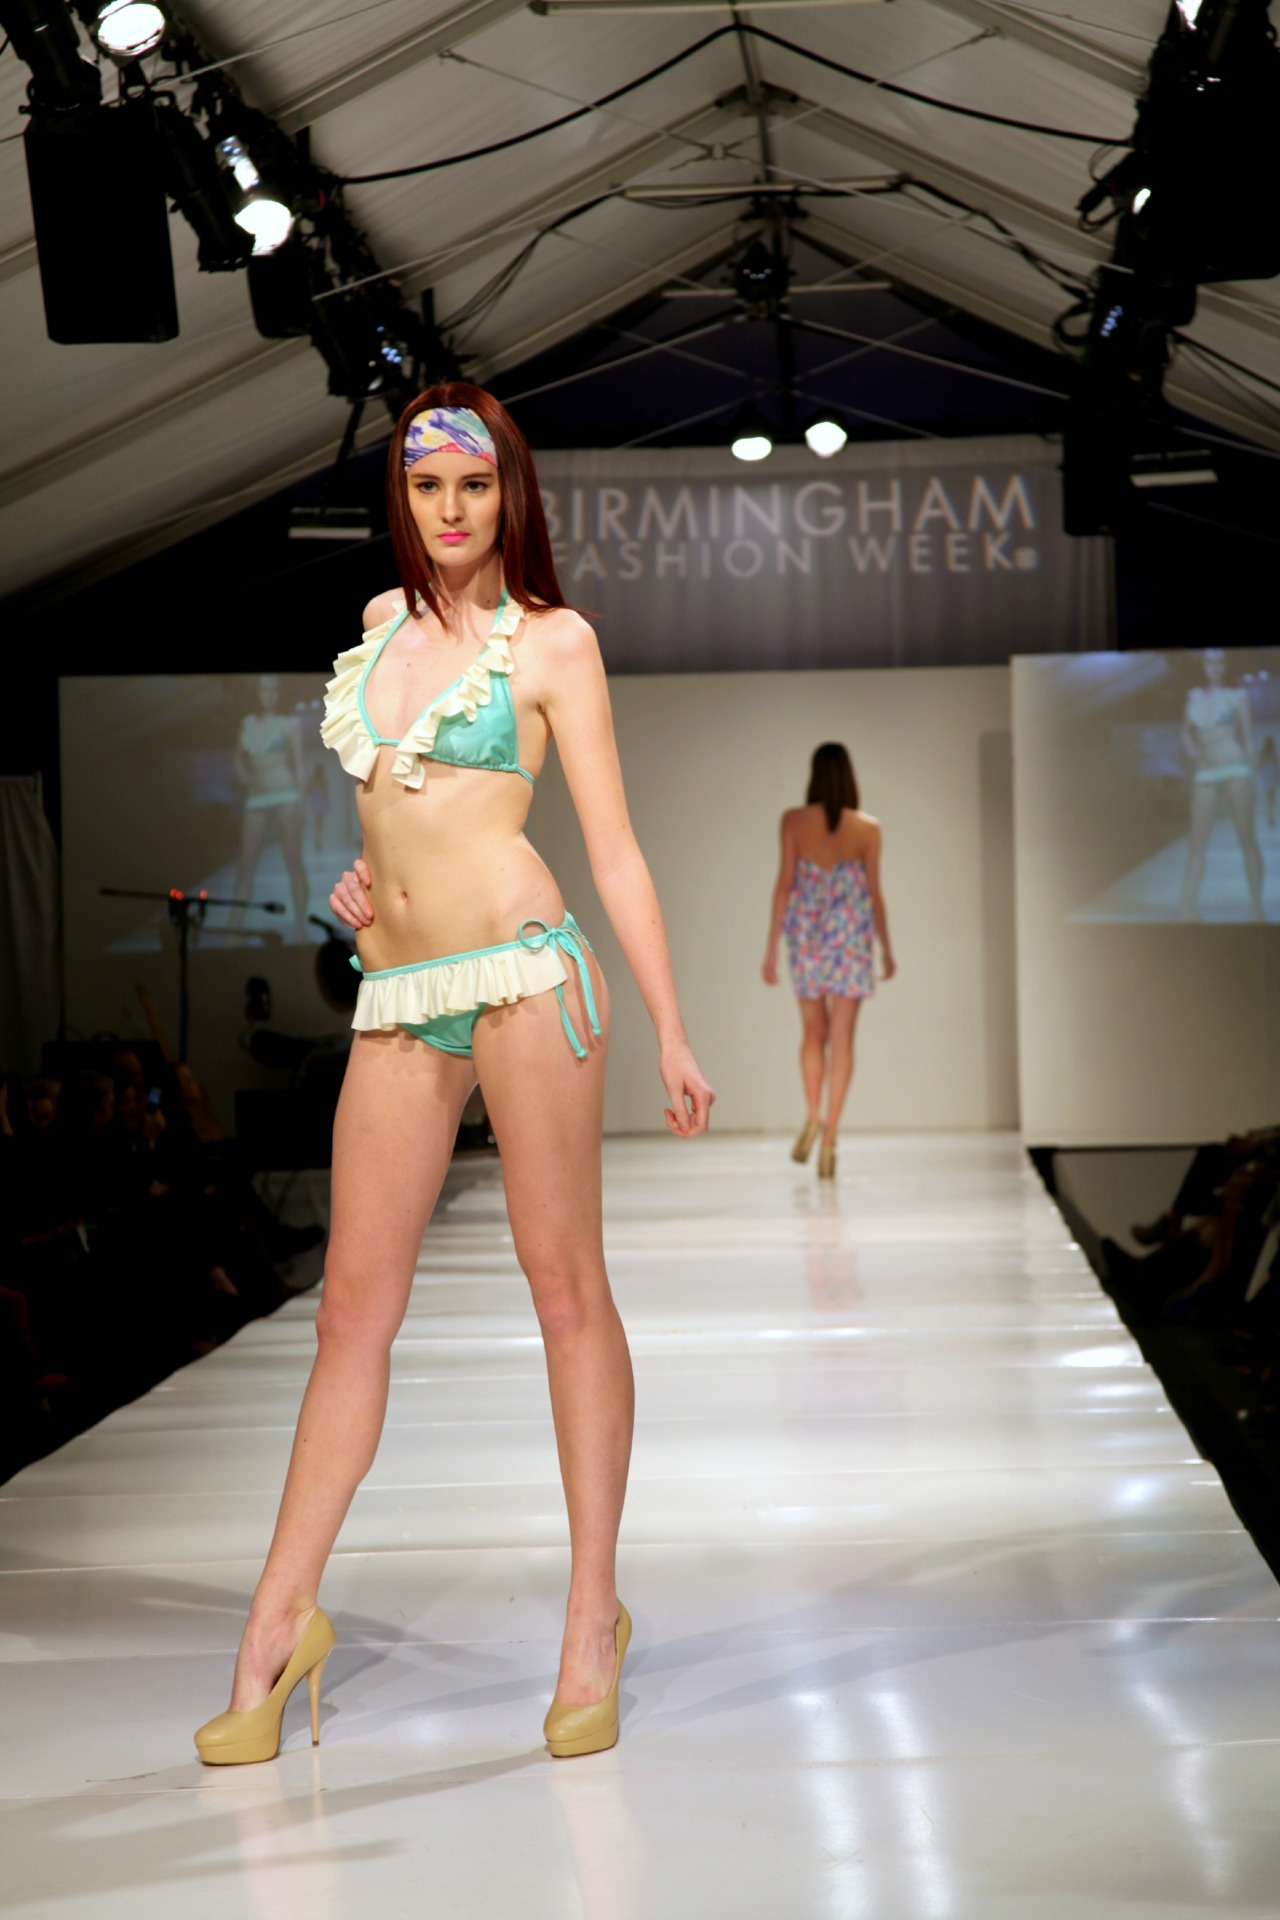 Leona apparel featured on the BFW Thursday night runway show. Doesn't this collection make you ready to soak up the summer sun! PHOTO CREDIT: NATALIE NORRIS PHOTOGRAPHY